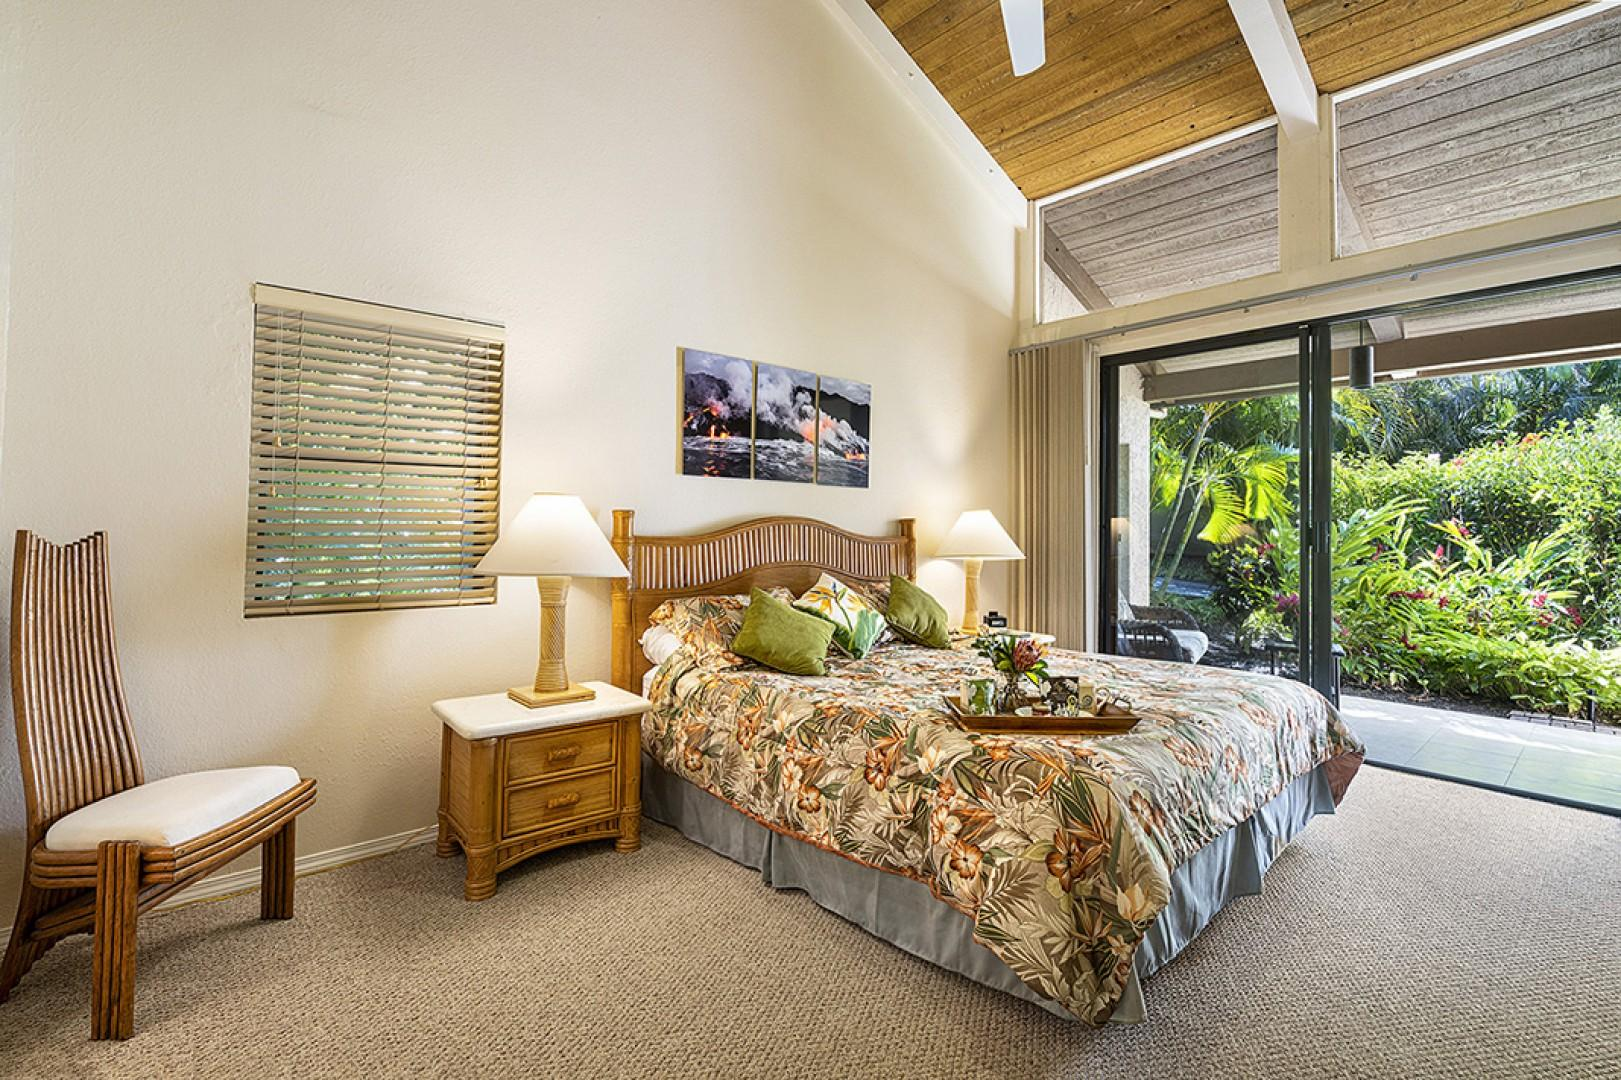 Lanai Access from the Master bedroom